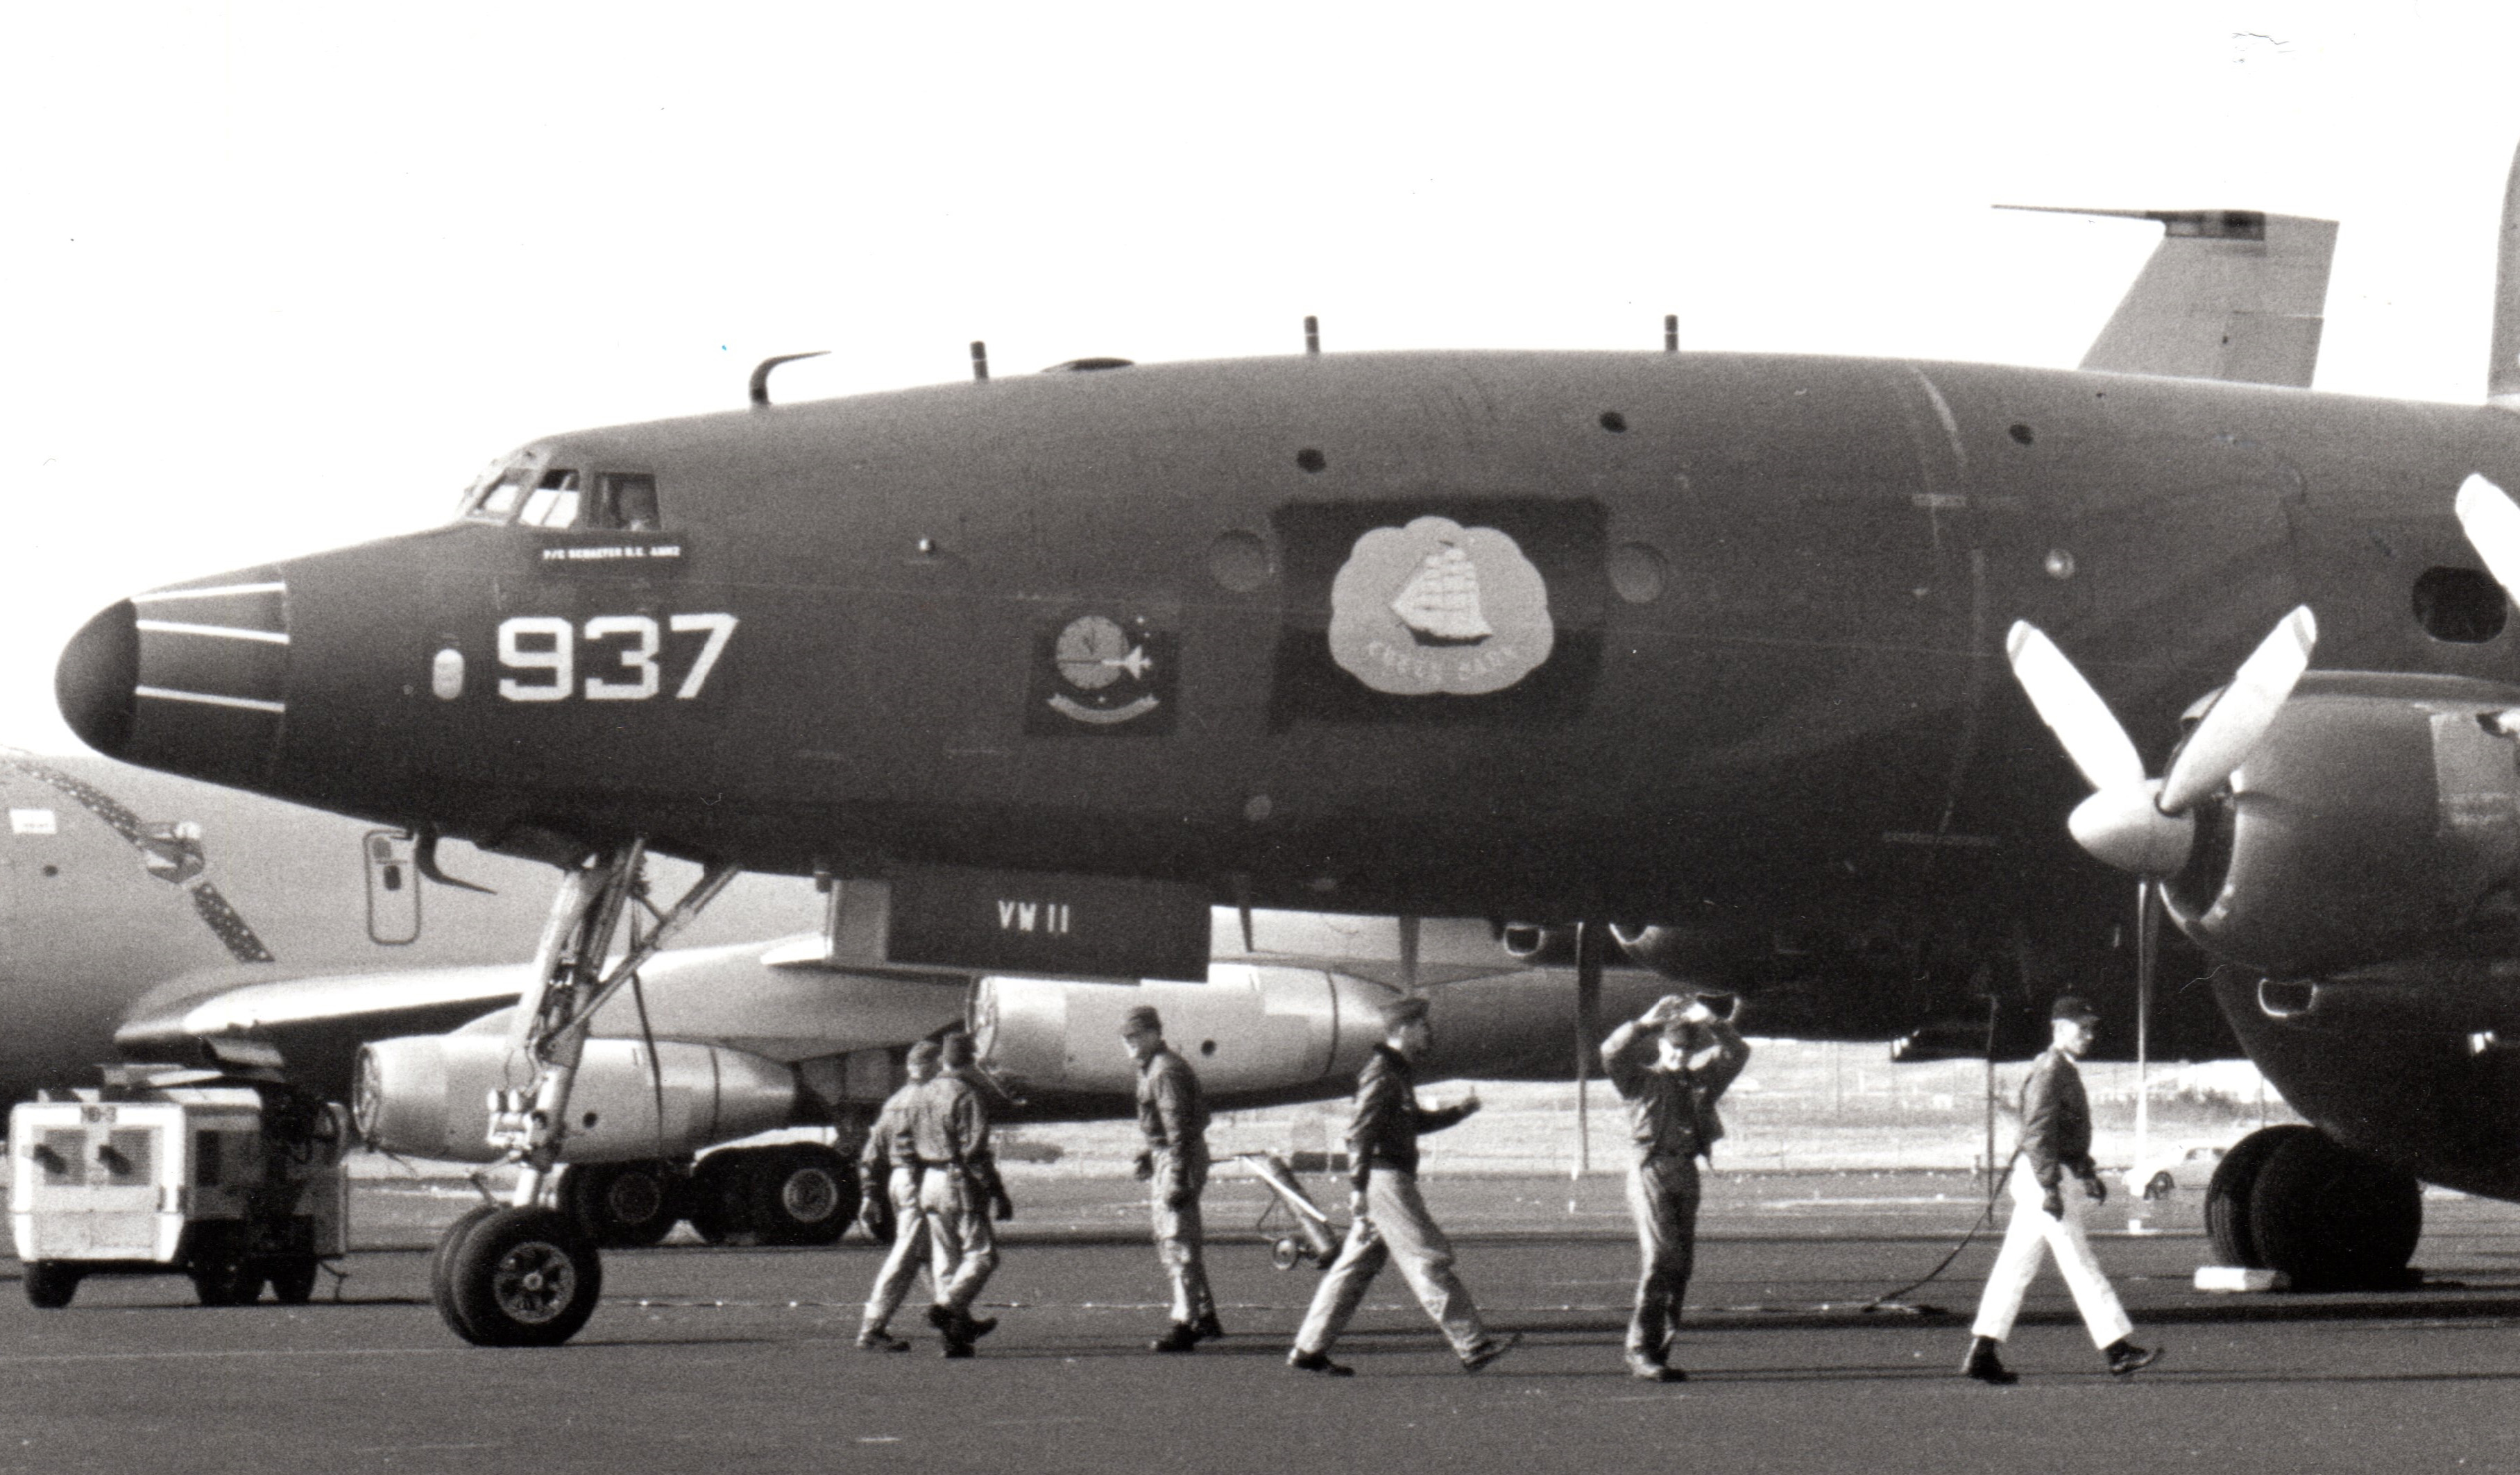 One of  VW-11's Lockheed WV-2 Super Constellations at Ernest Harmon AFB in Newfoundland during an Open Day in 1965. (photo by Will Tate)